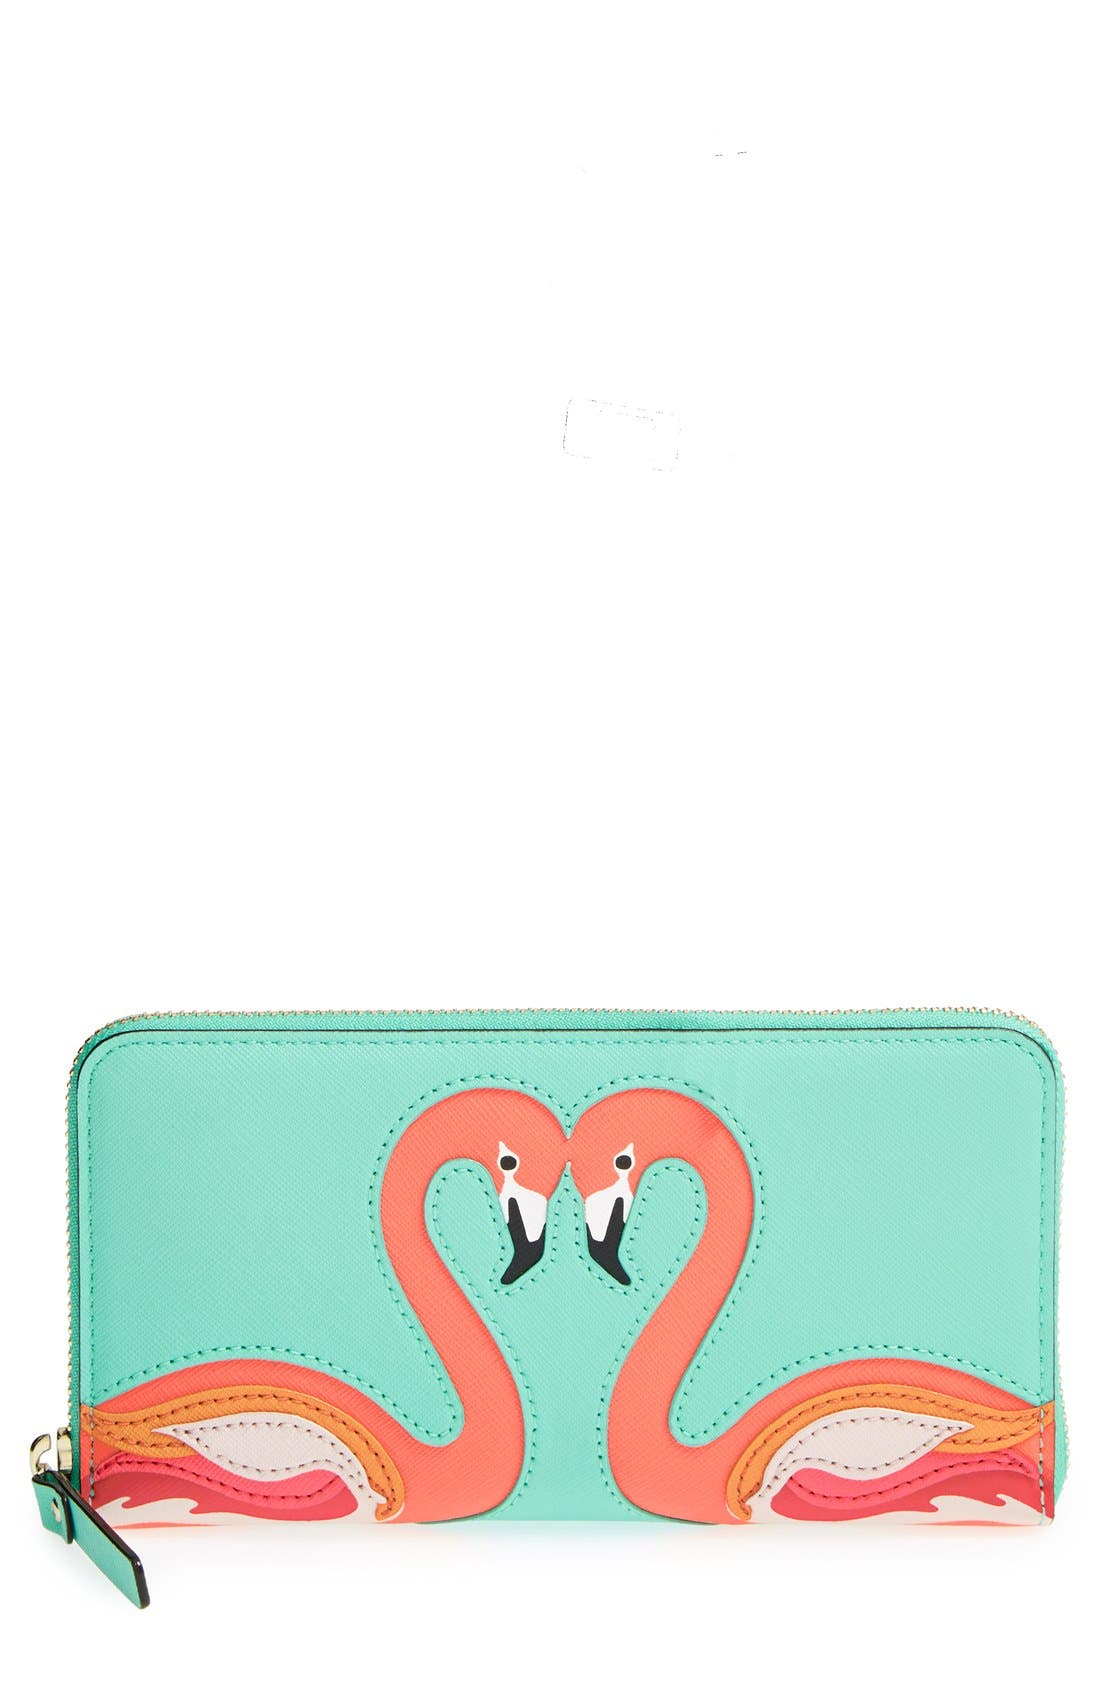 Alternate Image 1 Selected - kate spade new york 'strut your stuff - lacey' zip around wallet